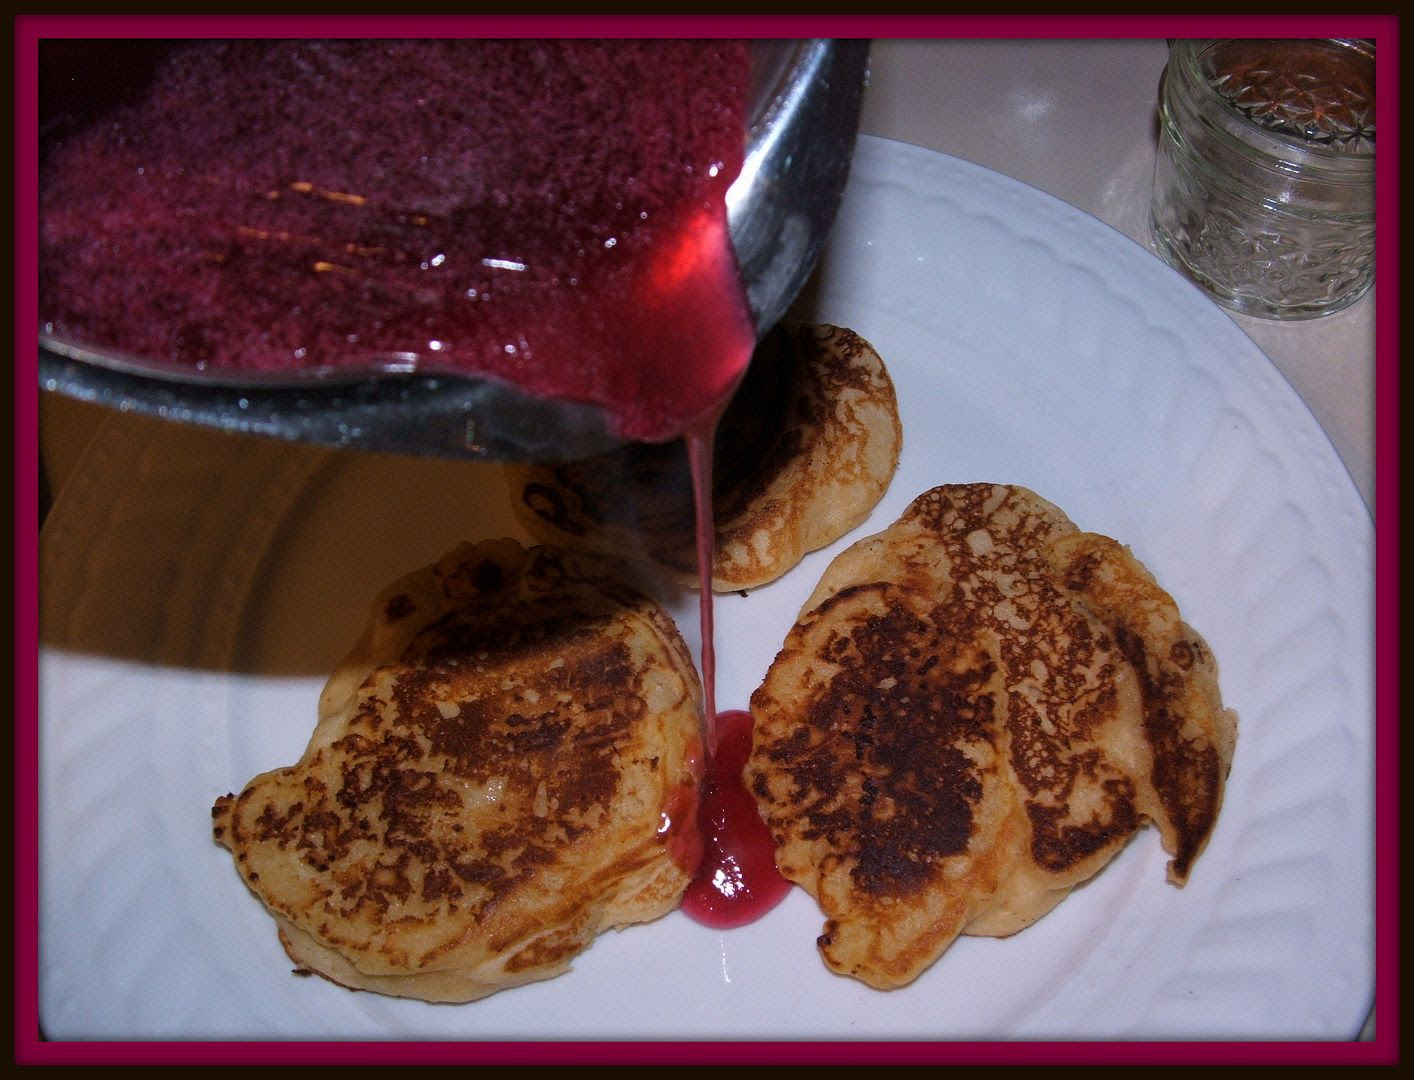 Peanut Butter Pancakes with Grape Syrup by Angie Ouellette-Tower photo 009_zpse54ec53c.jpg